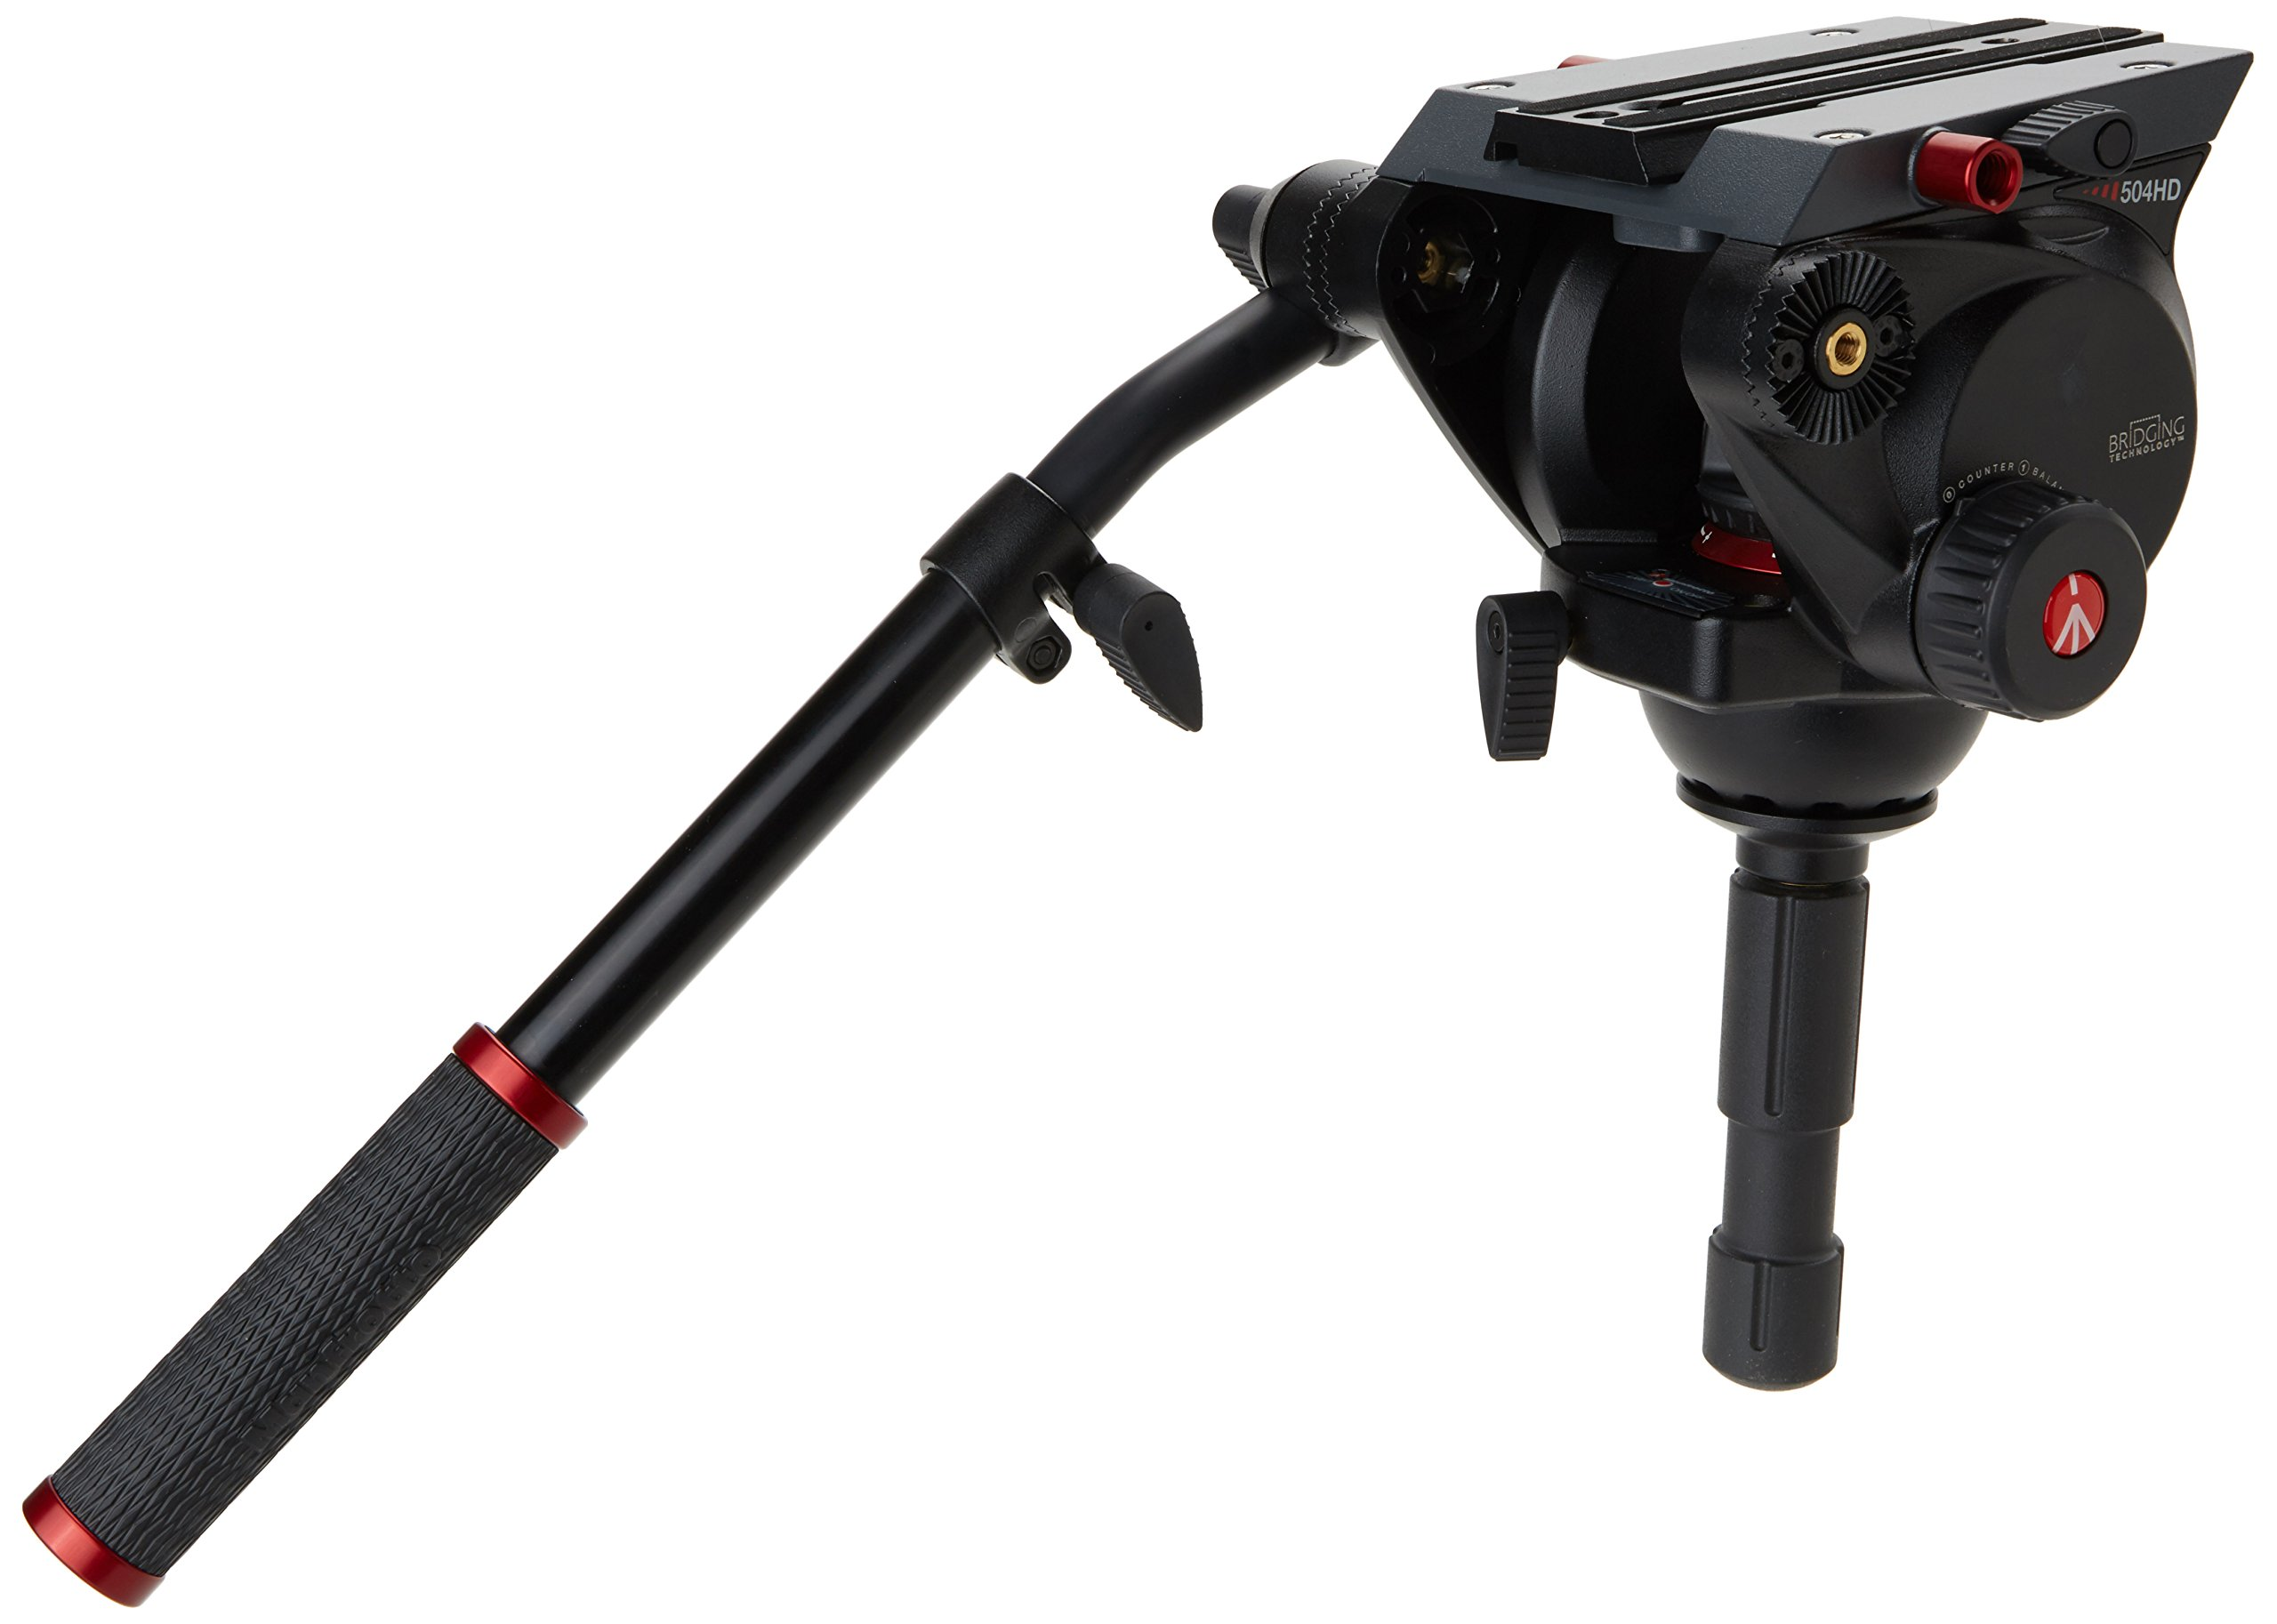 Manfrotto 504HD Video Head (Black) by Manfrotto (Image #2)